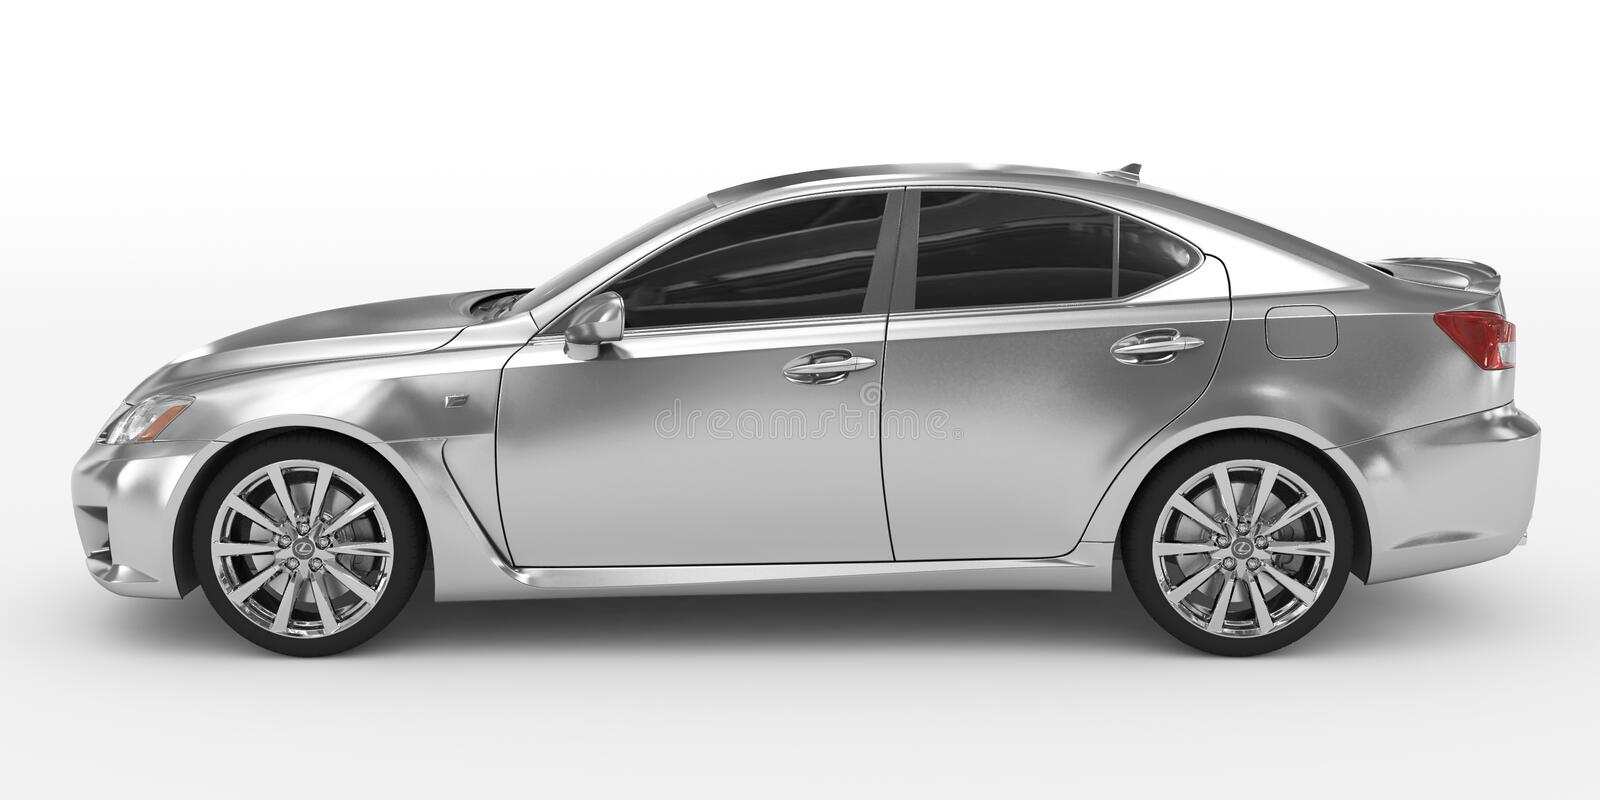 Car isolated on white - silver, tinted glass - left side view royalty free illustration